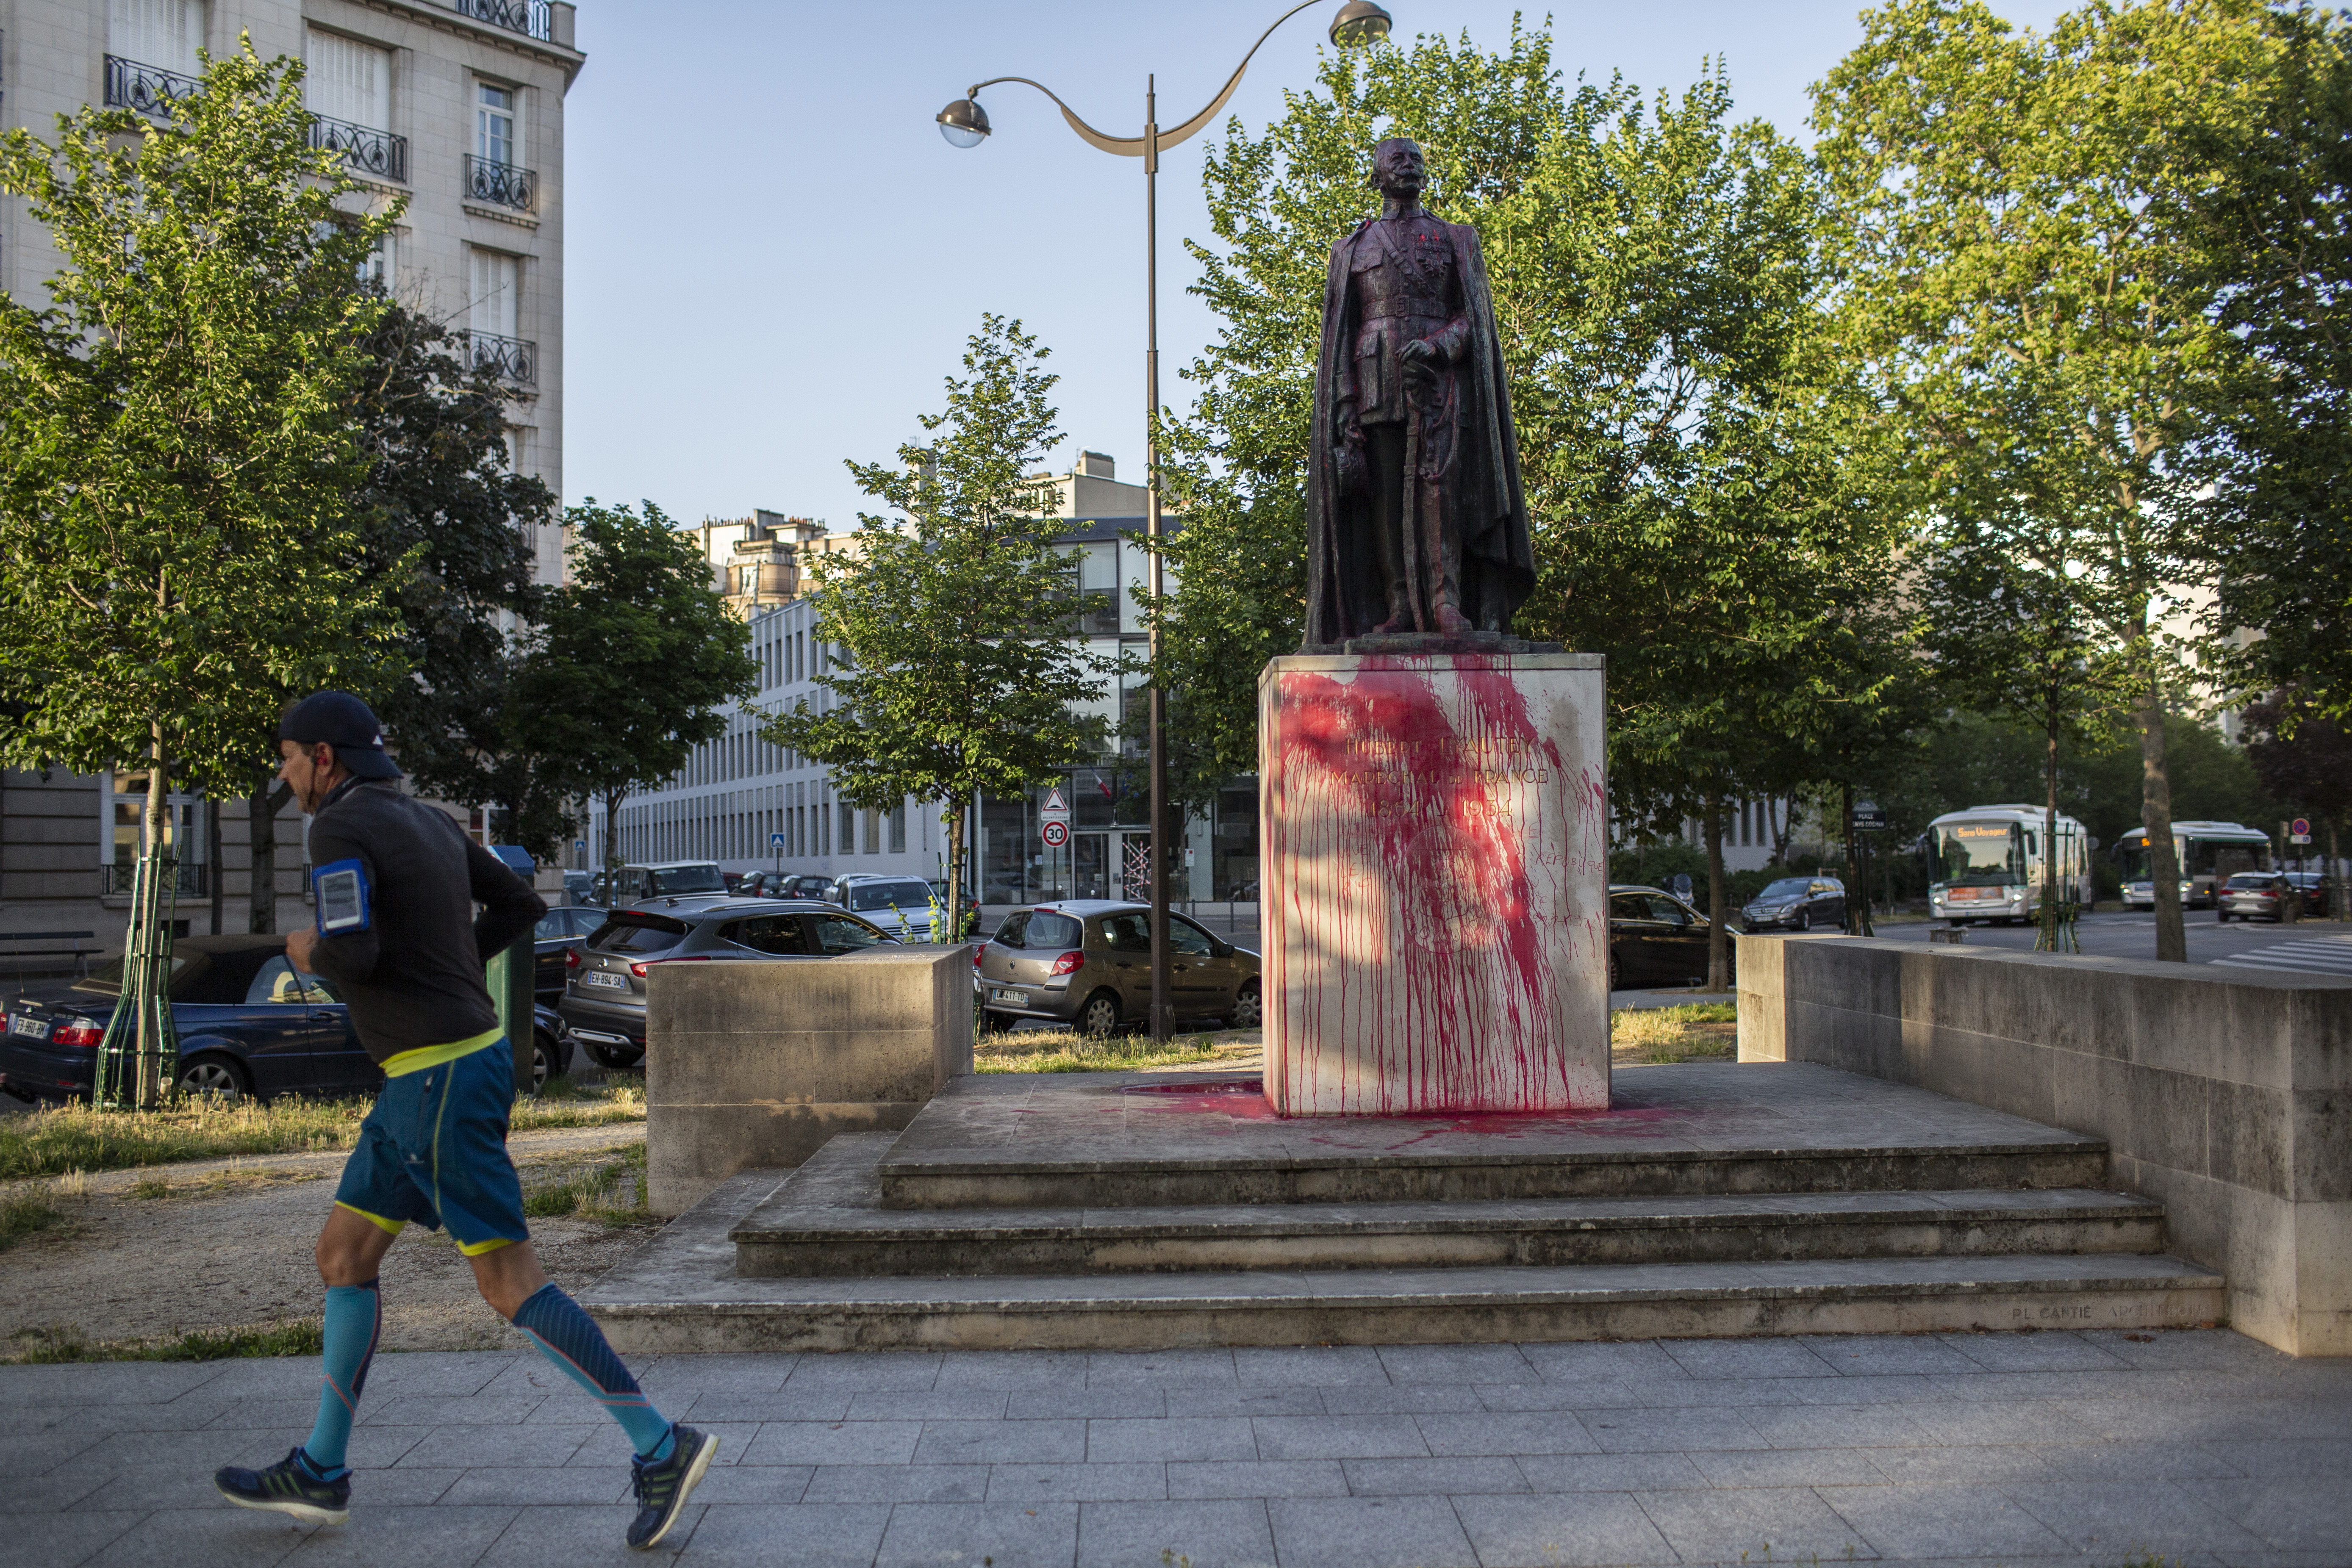 A man jogs past a statue, covered with red painting, of Hubert Lyautey, who served in Morocco, Algeria, Madagascar and Indochina when they were under French control, on June 22, 2020.